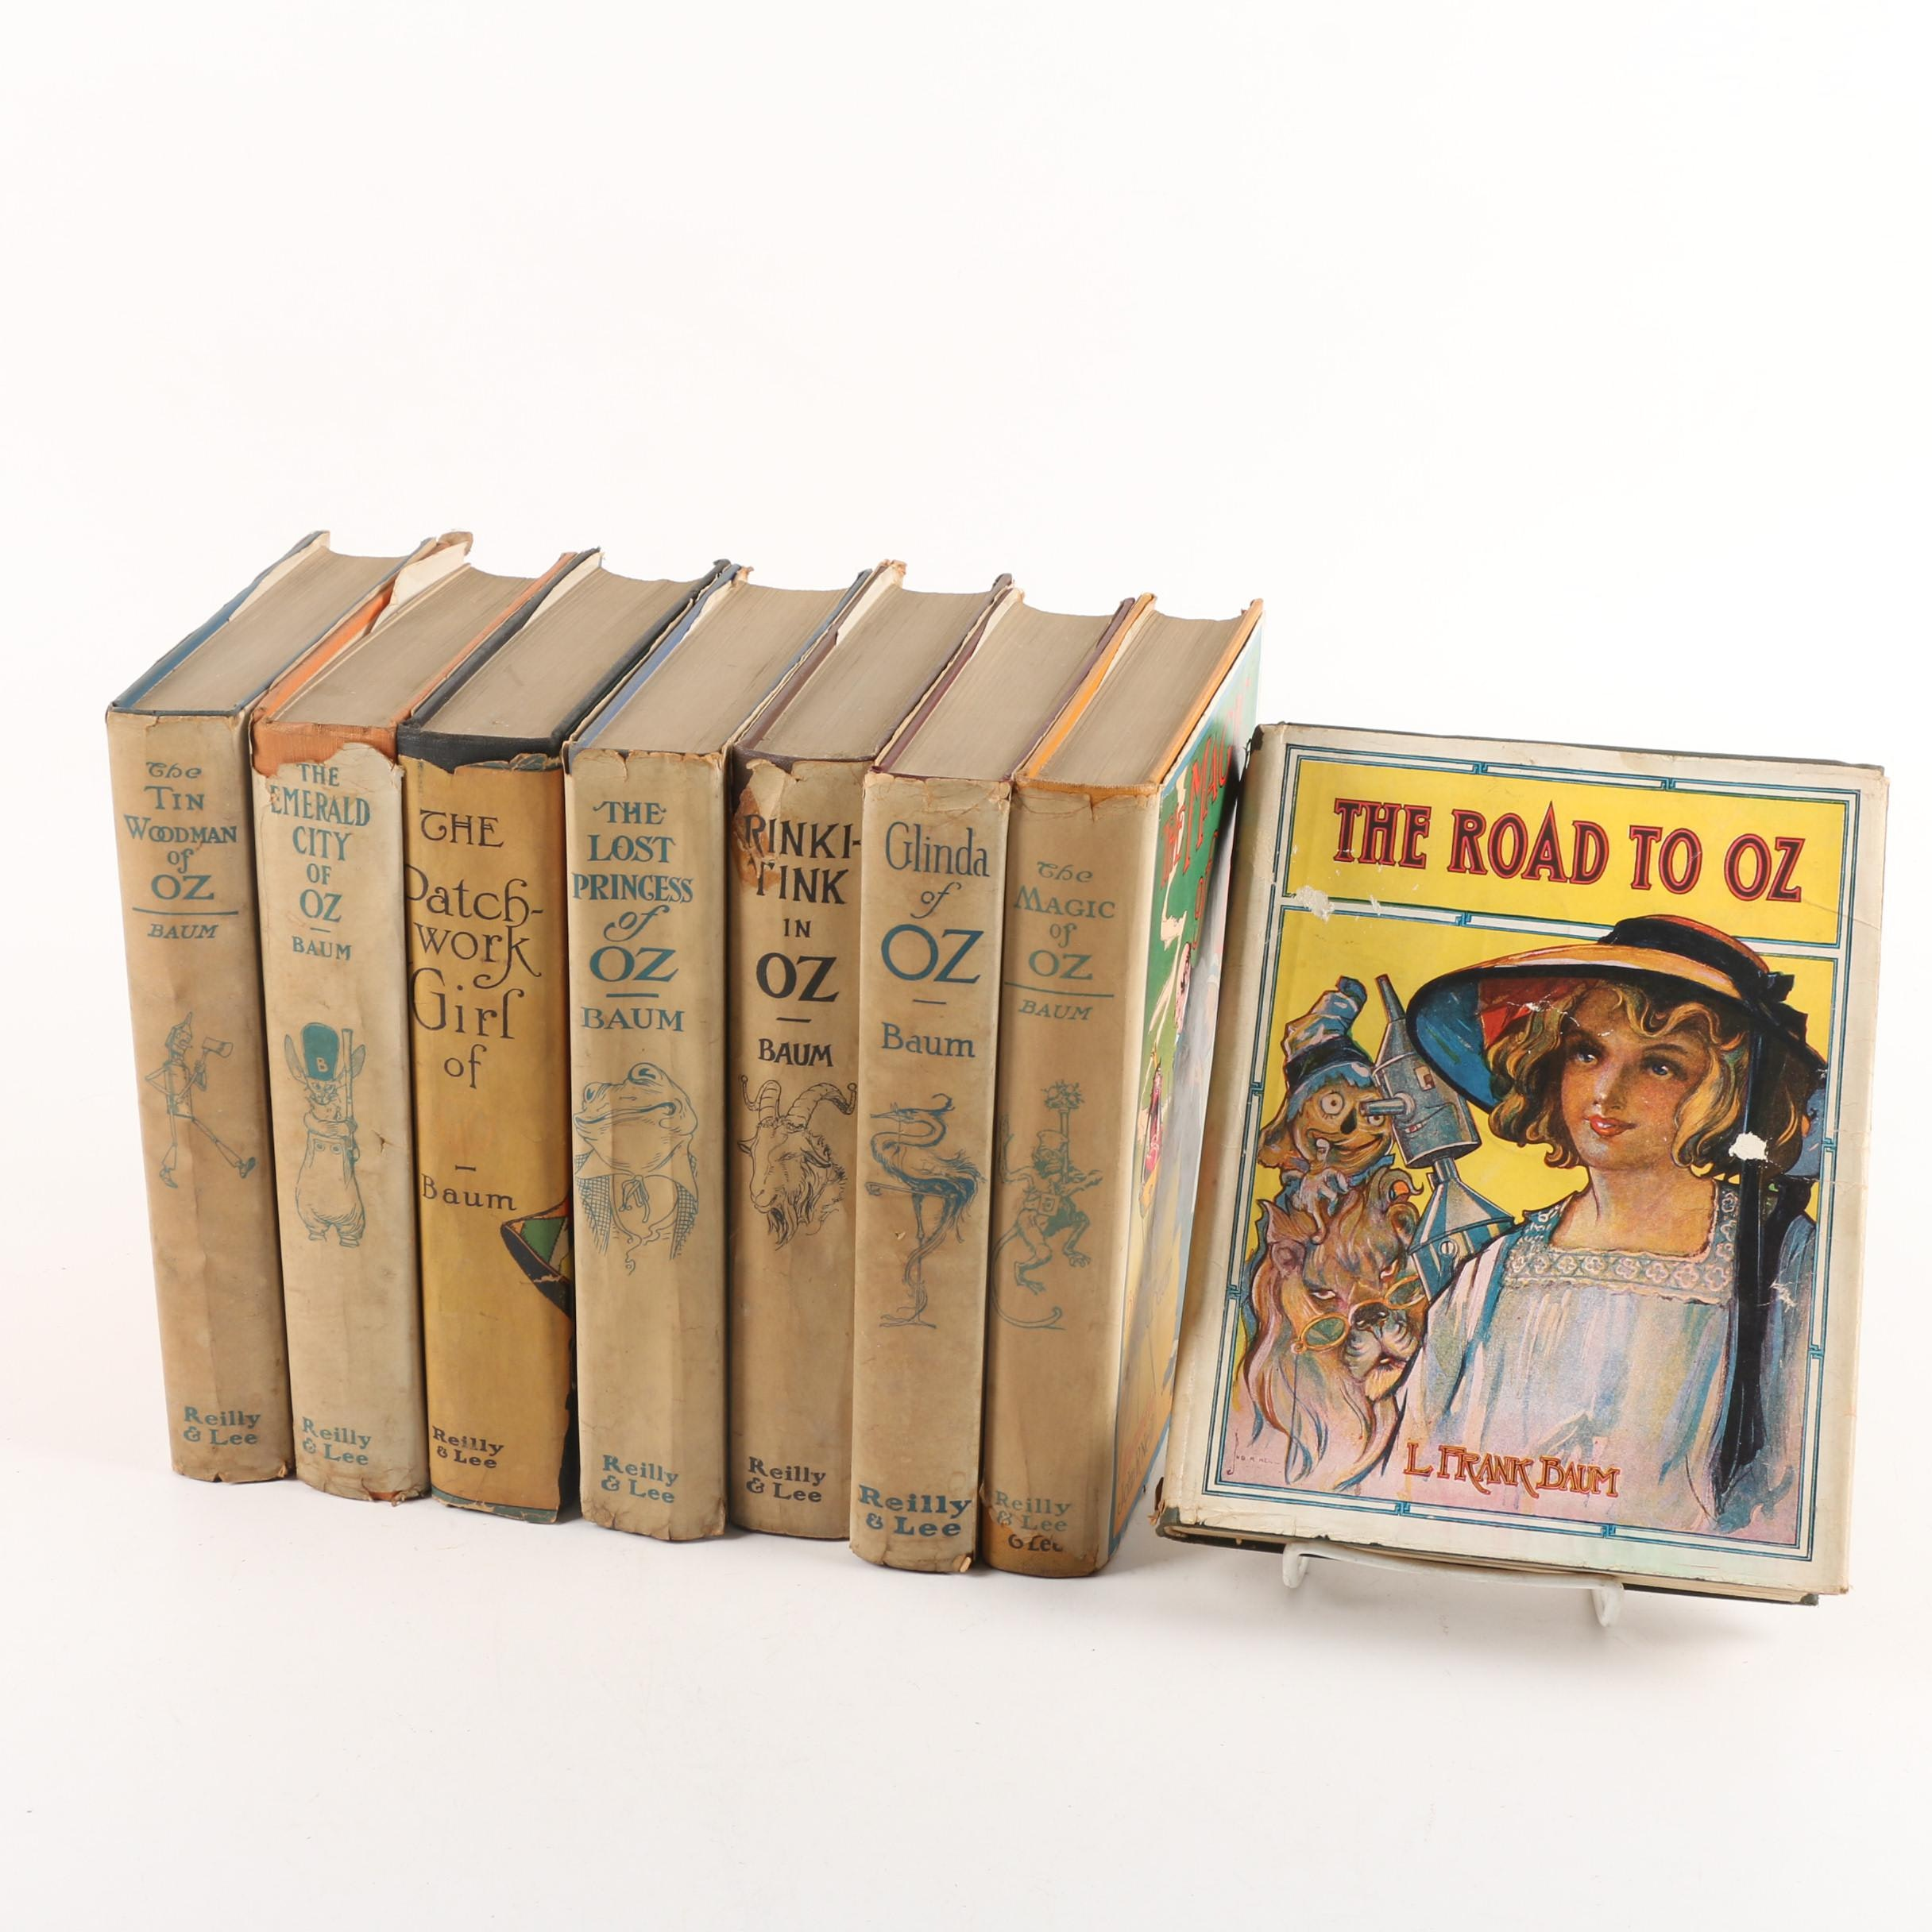 """Vintage """"Oz"""" Books by L. Frank Baum Including """"The Road to Oz"""""""